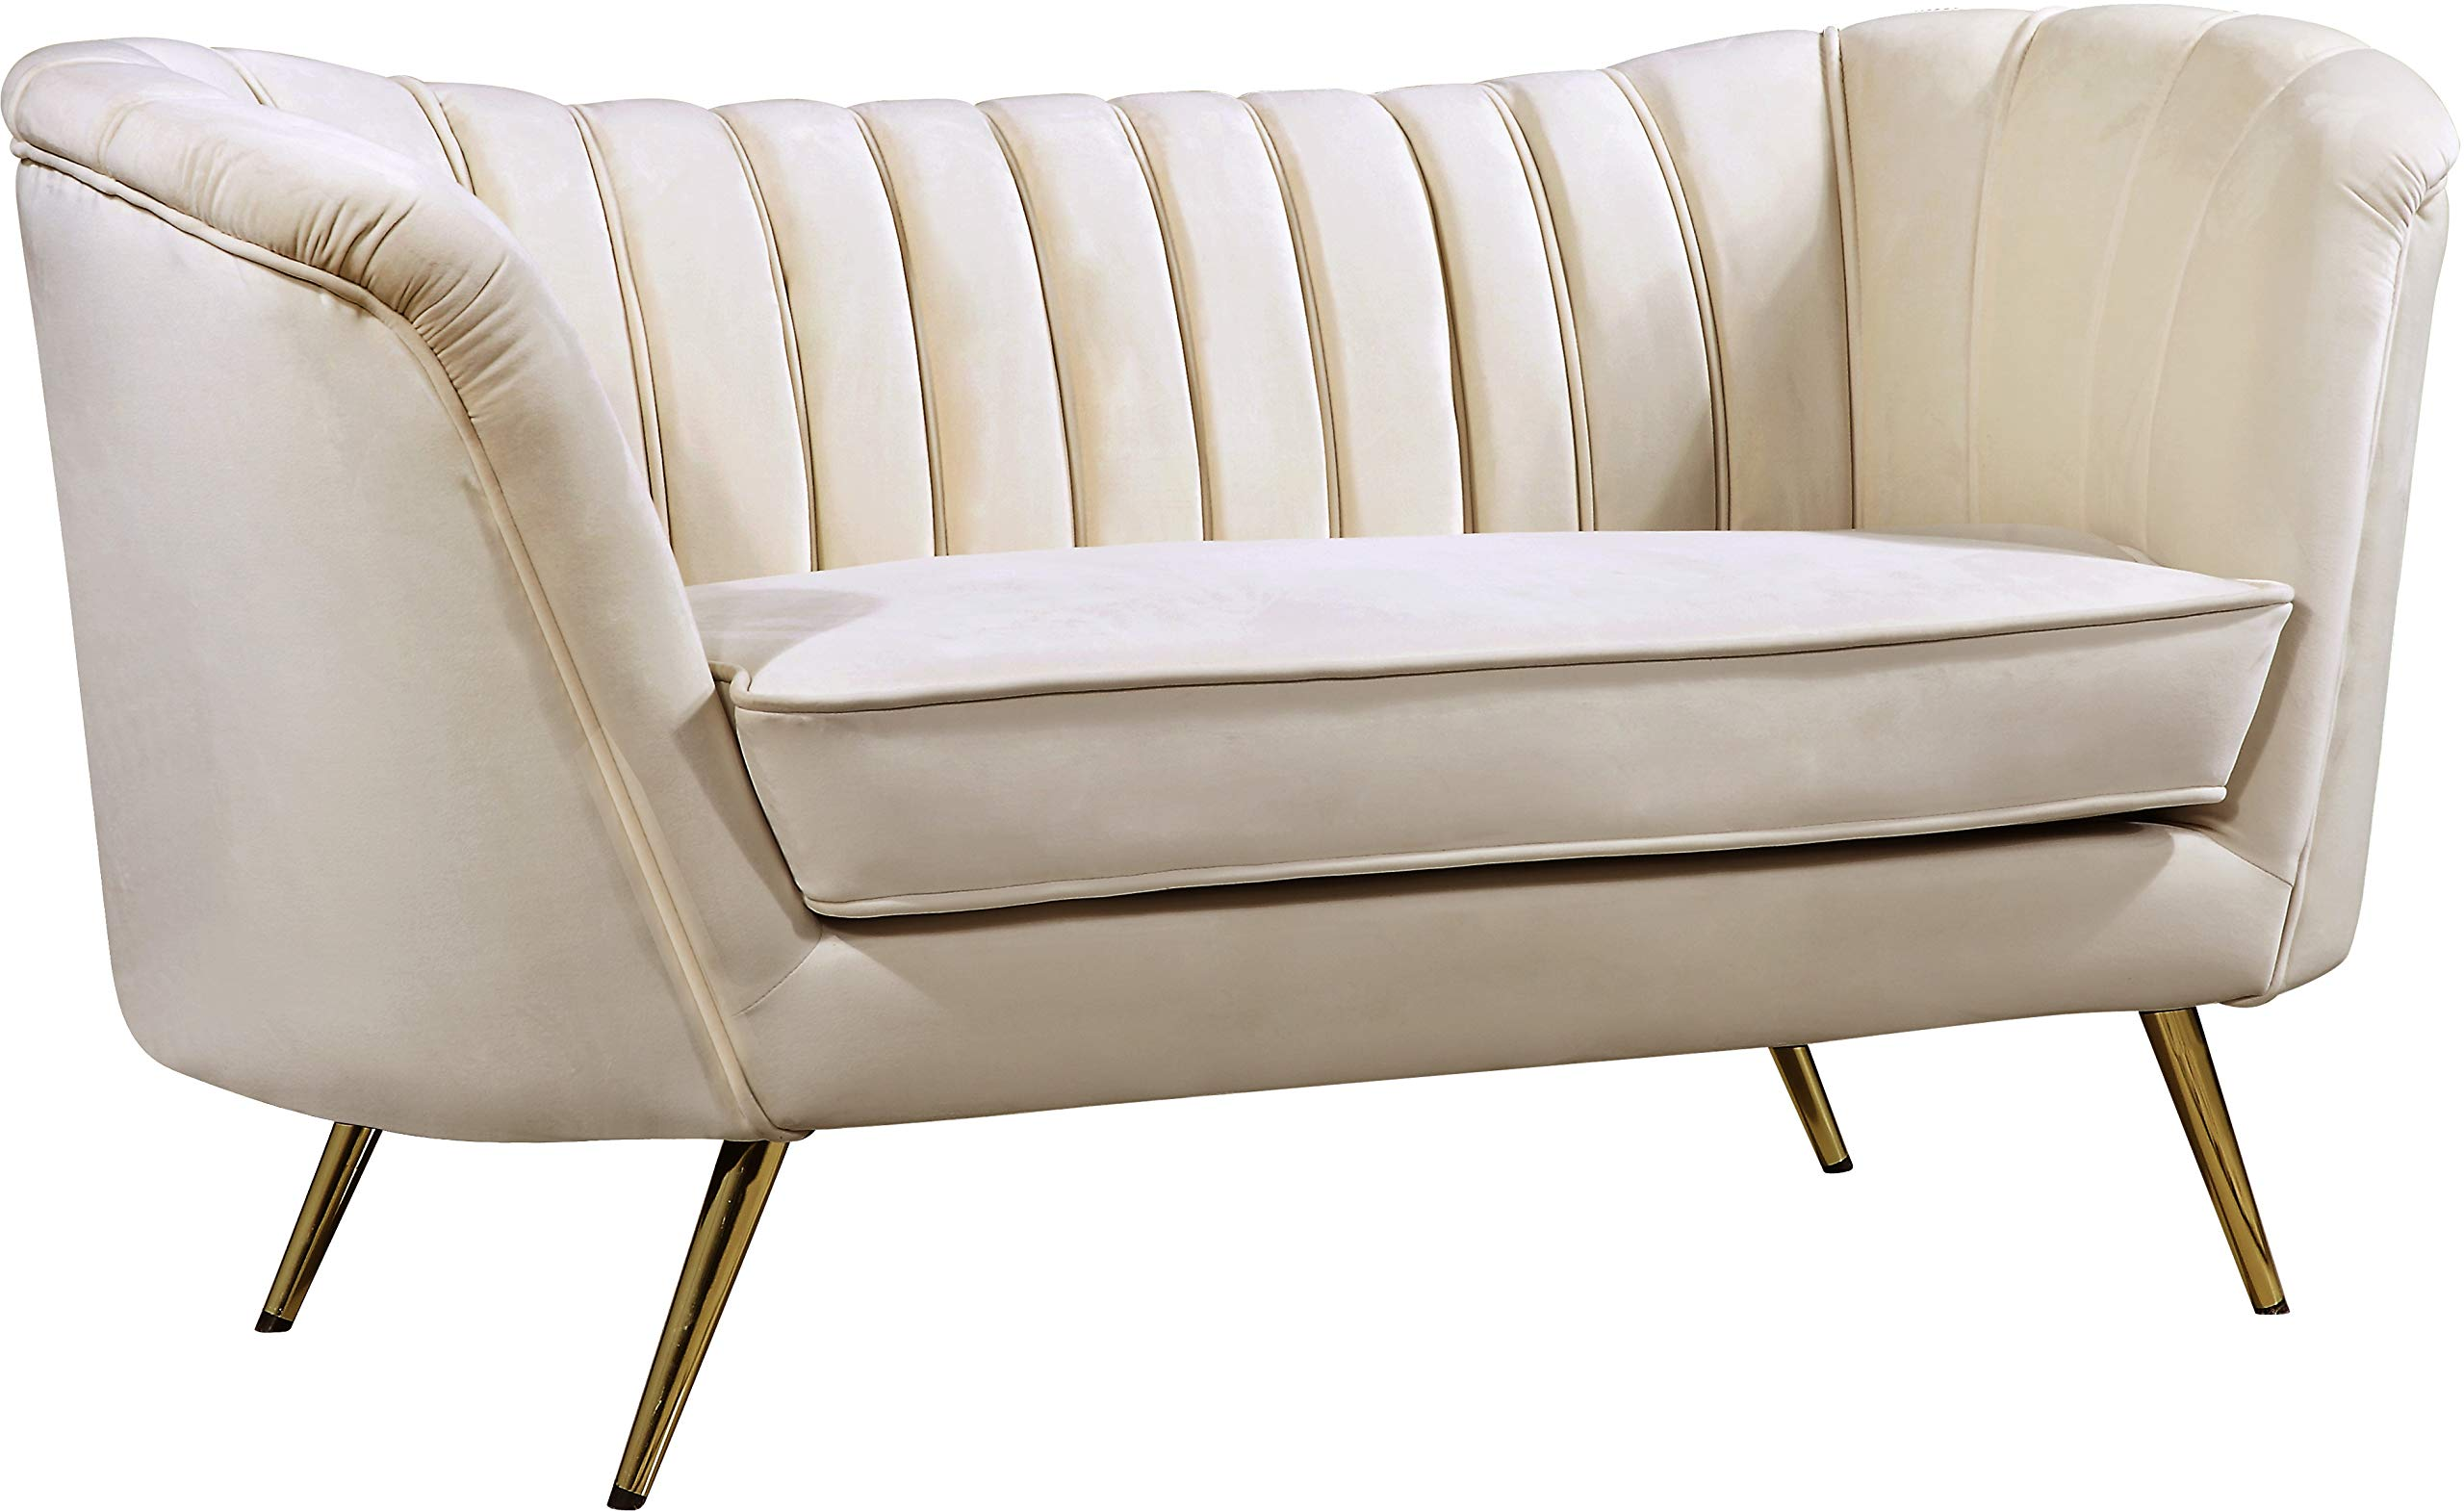 Meridian Furniture Margo Collection Modern | Contemporary Cream Velvet Upholstered Loveseat with Rich Gold Stainless Steel Base, 65'' W x 30'' D x 33'' H by Meridian Furniture